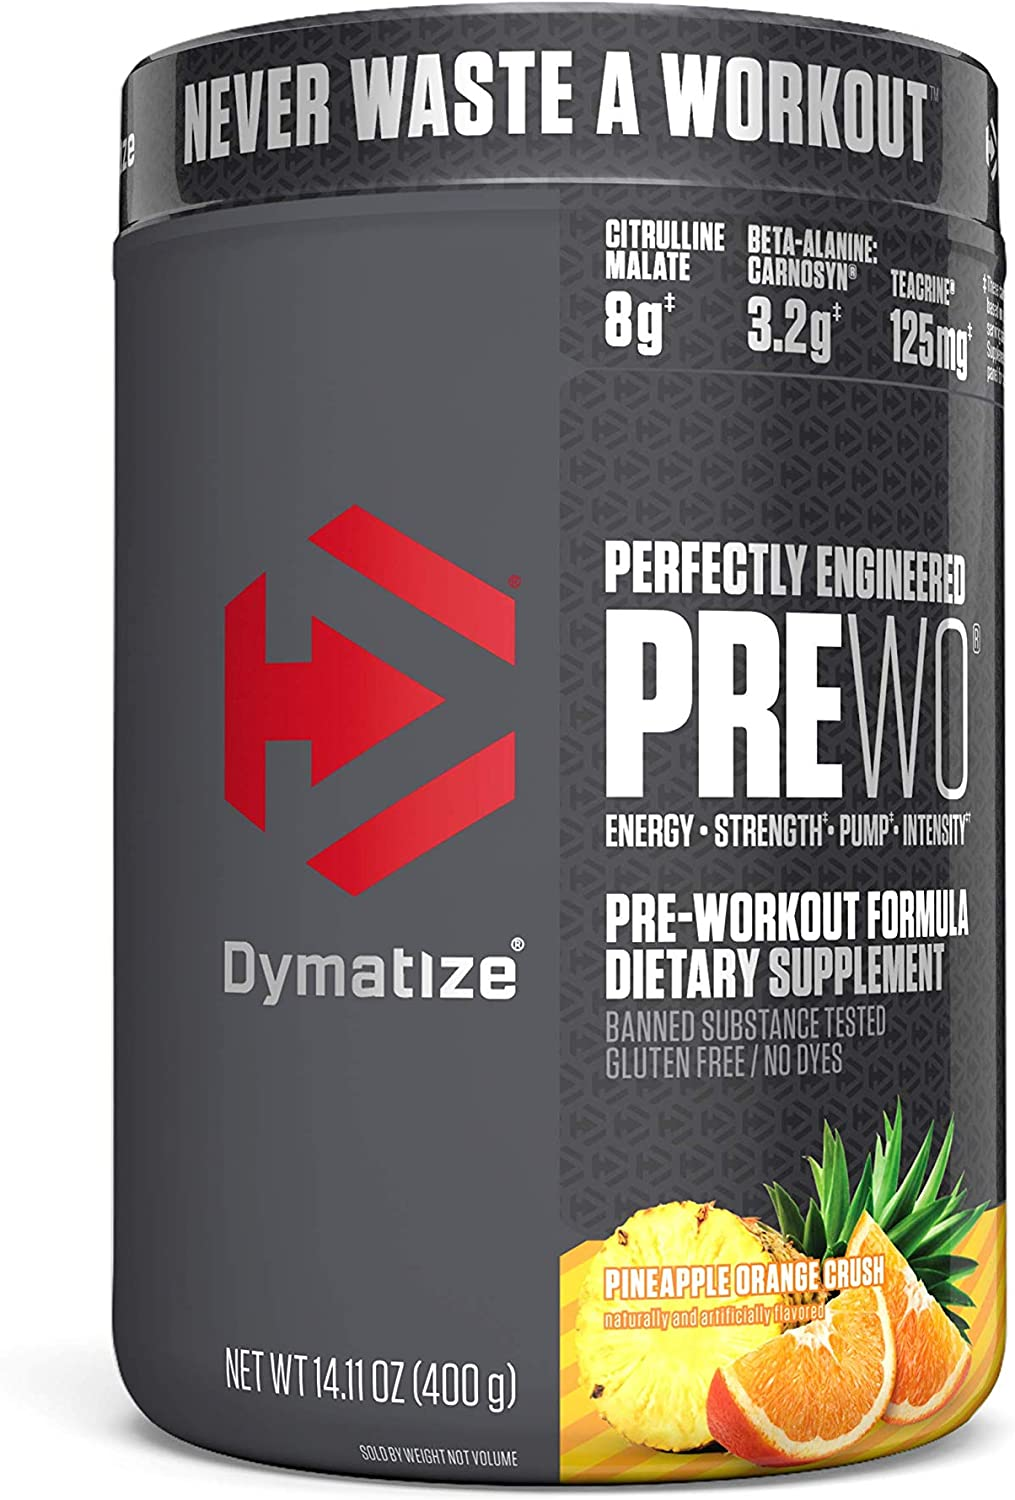 Dymatize PreW.O., Pre Workout Powder with Caffeine, Maximize Energy, Strength & Endurance, Amplify Intensity of Workouts, Pinapple Orange Crush, 400g